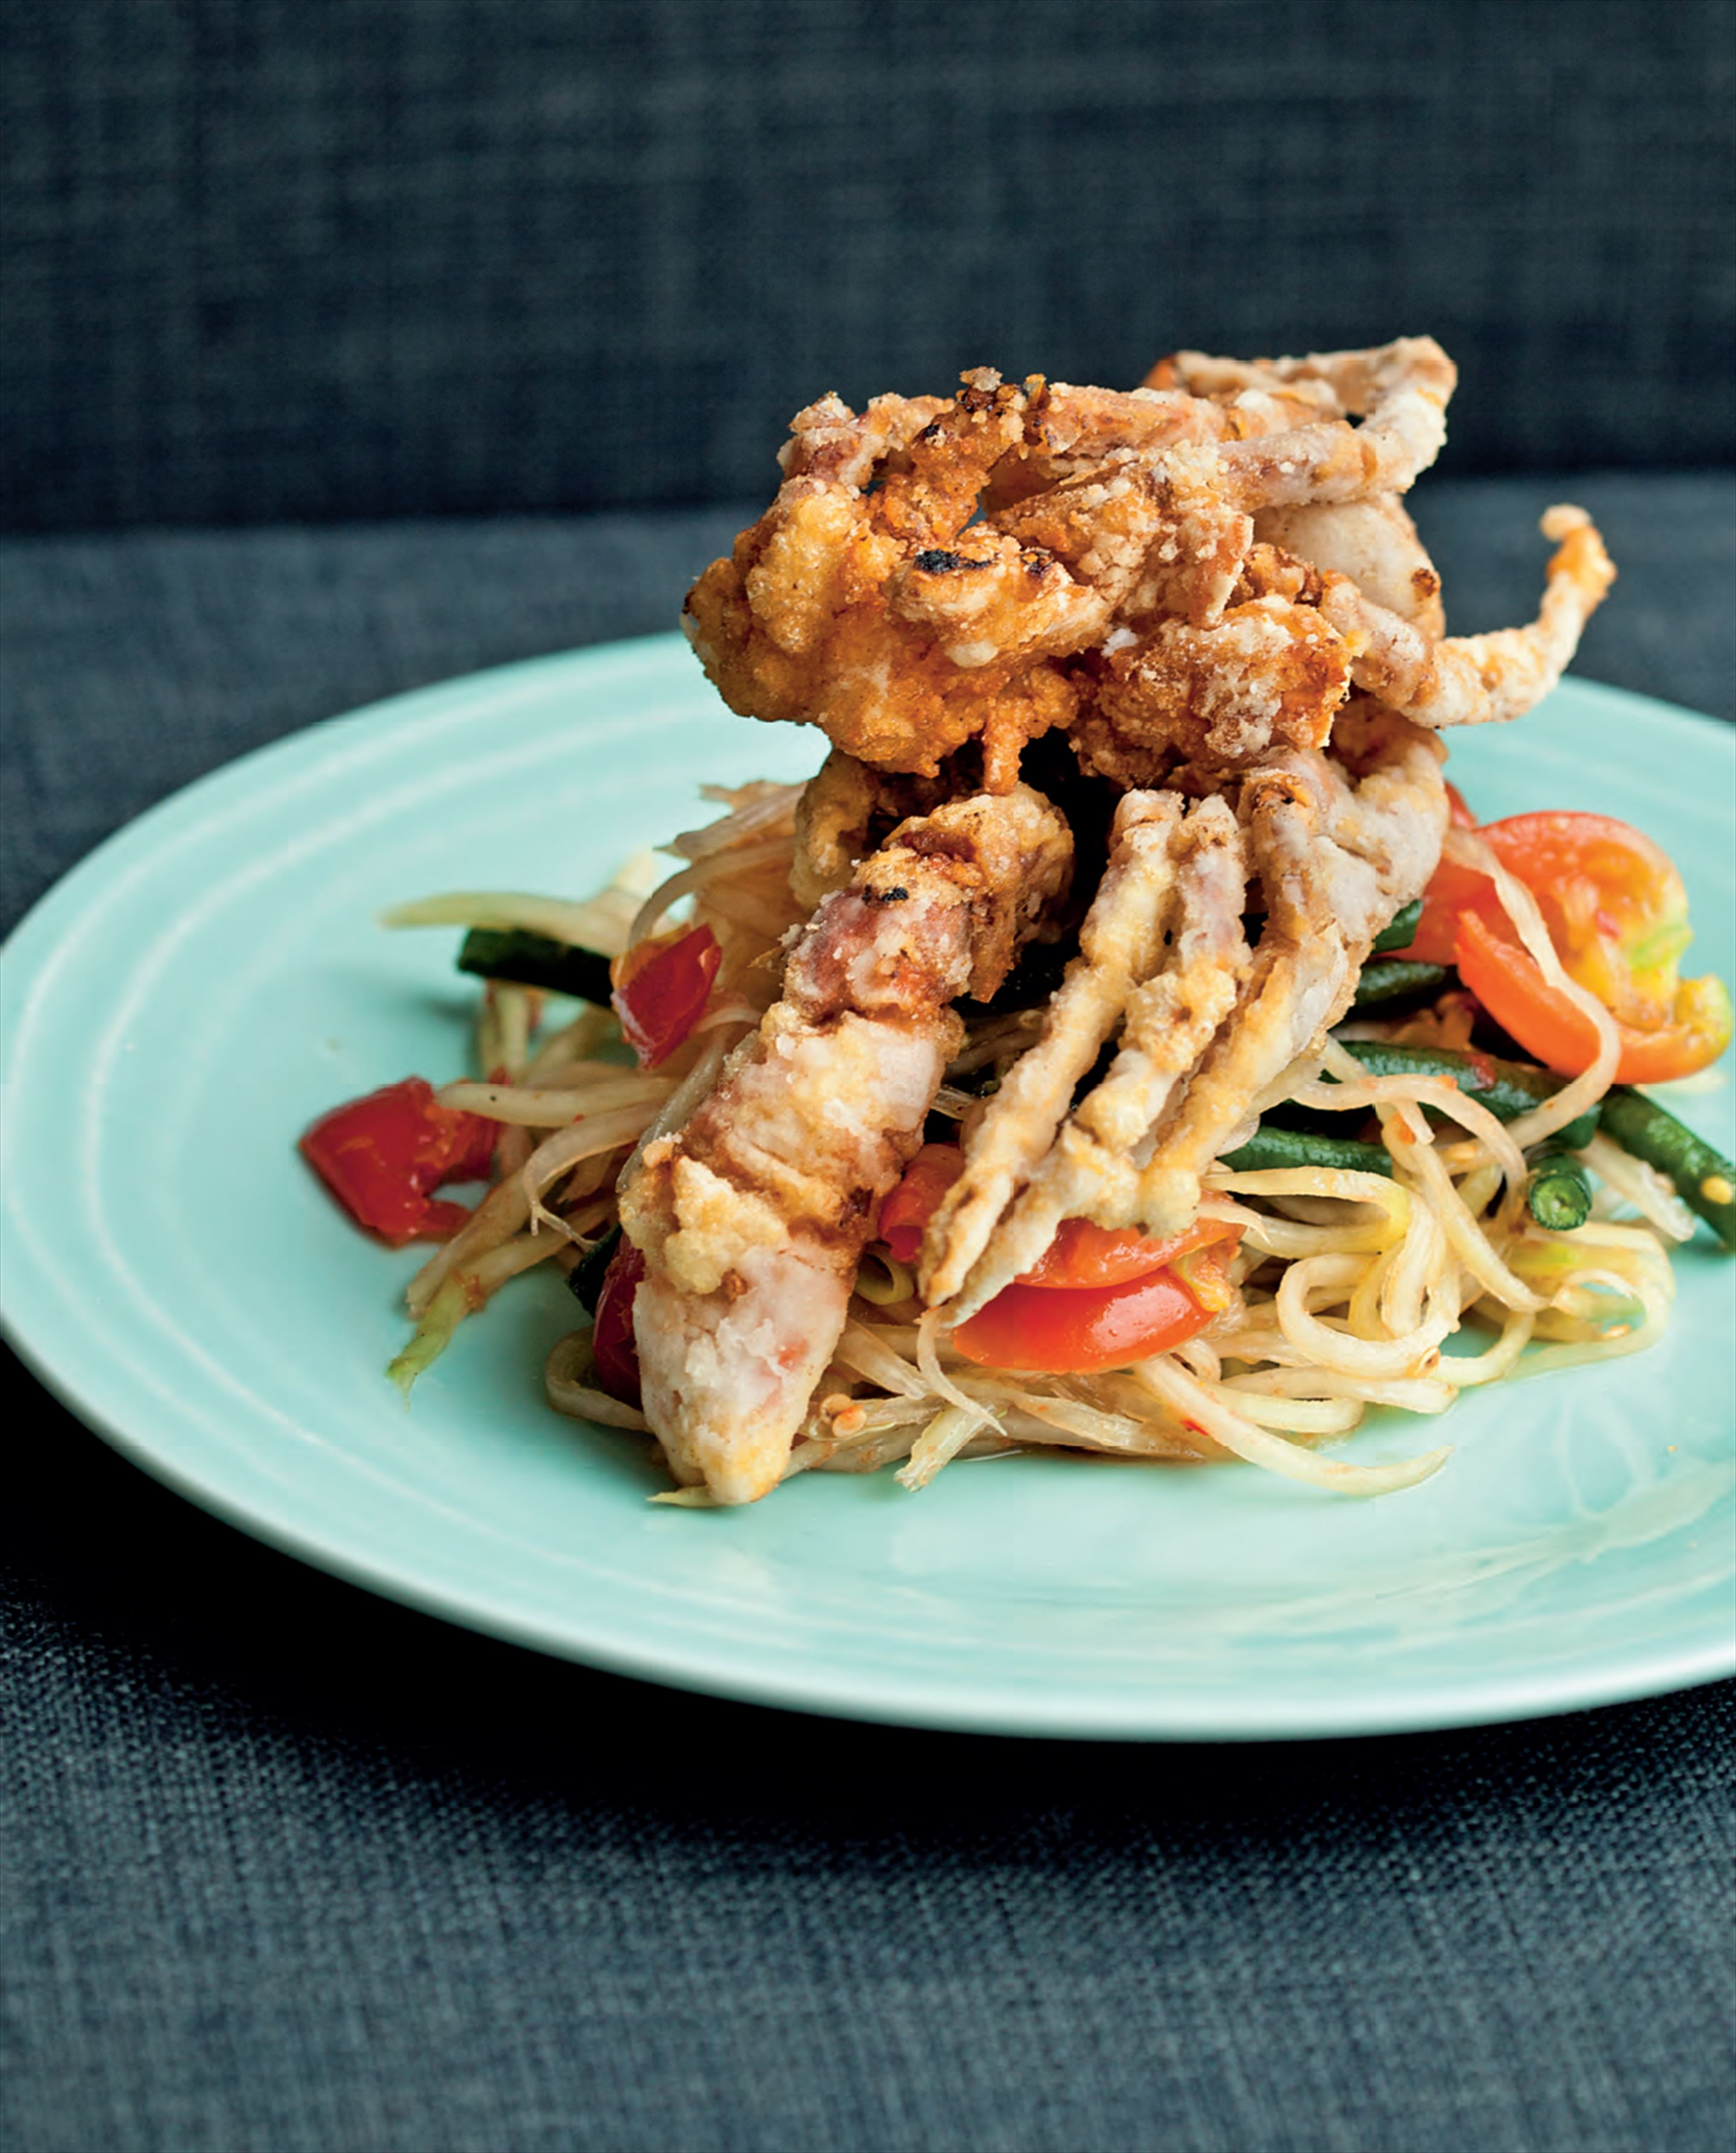 Deep-fried soft shell crab with som tum